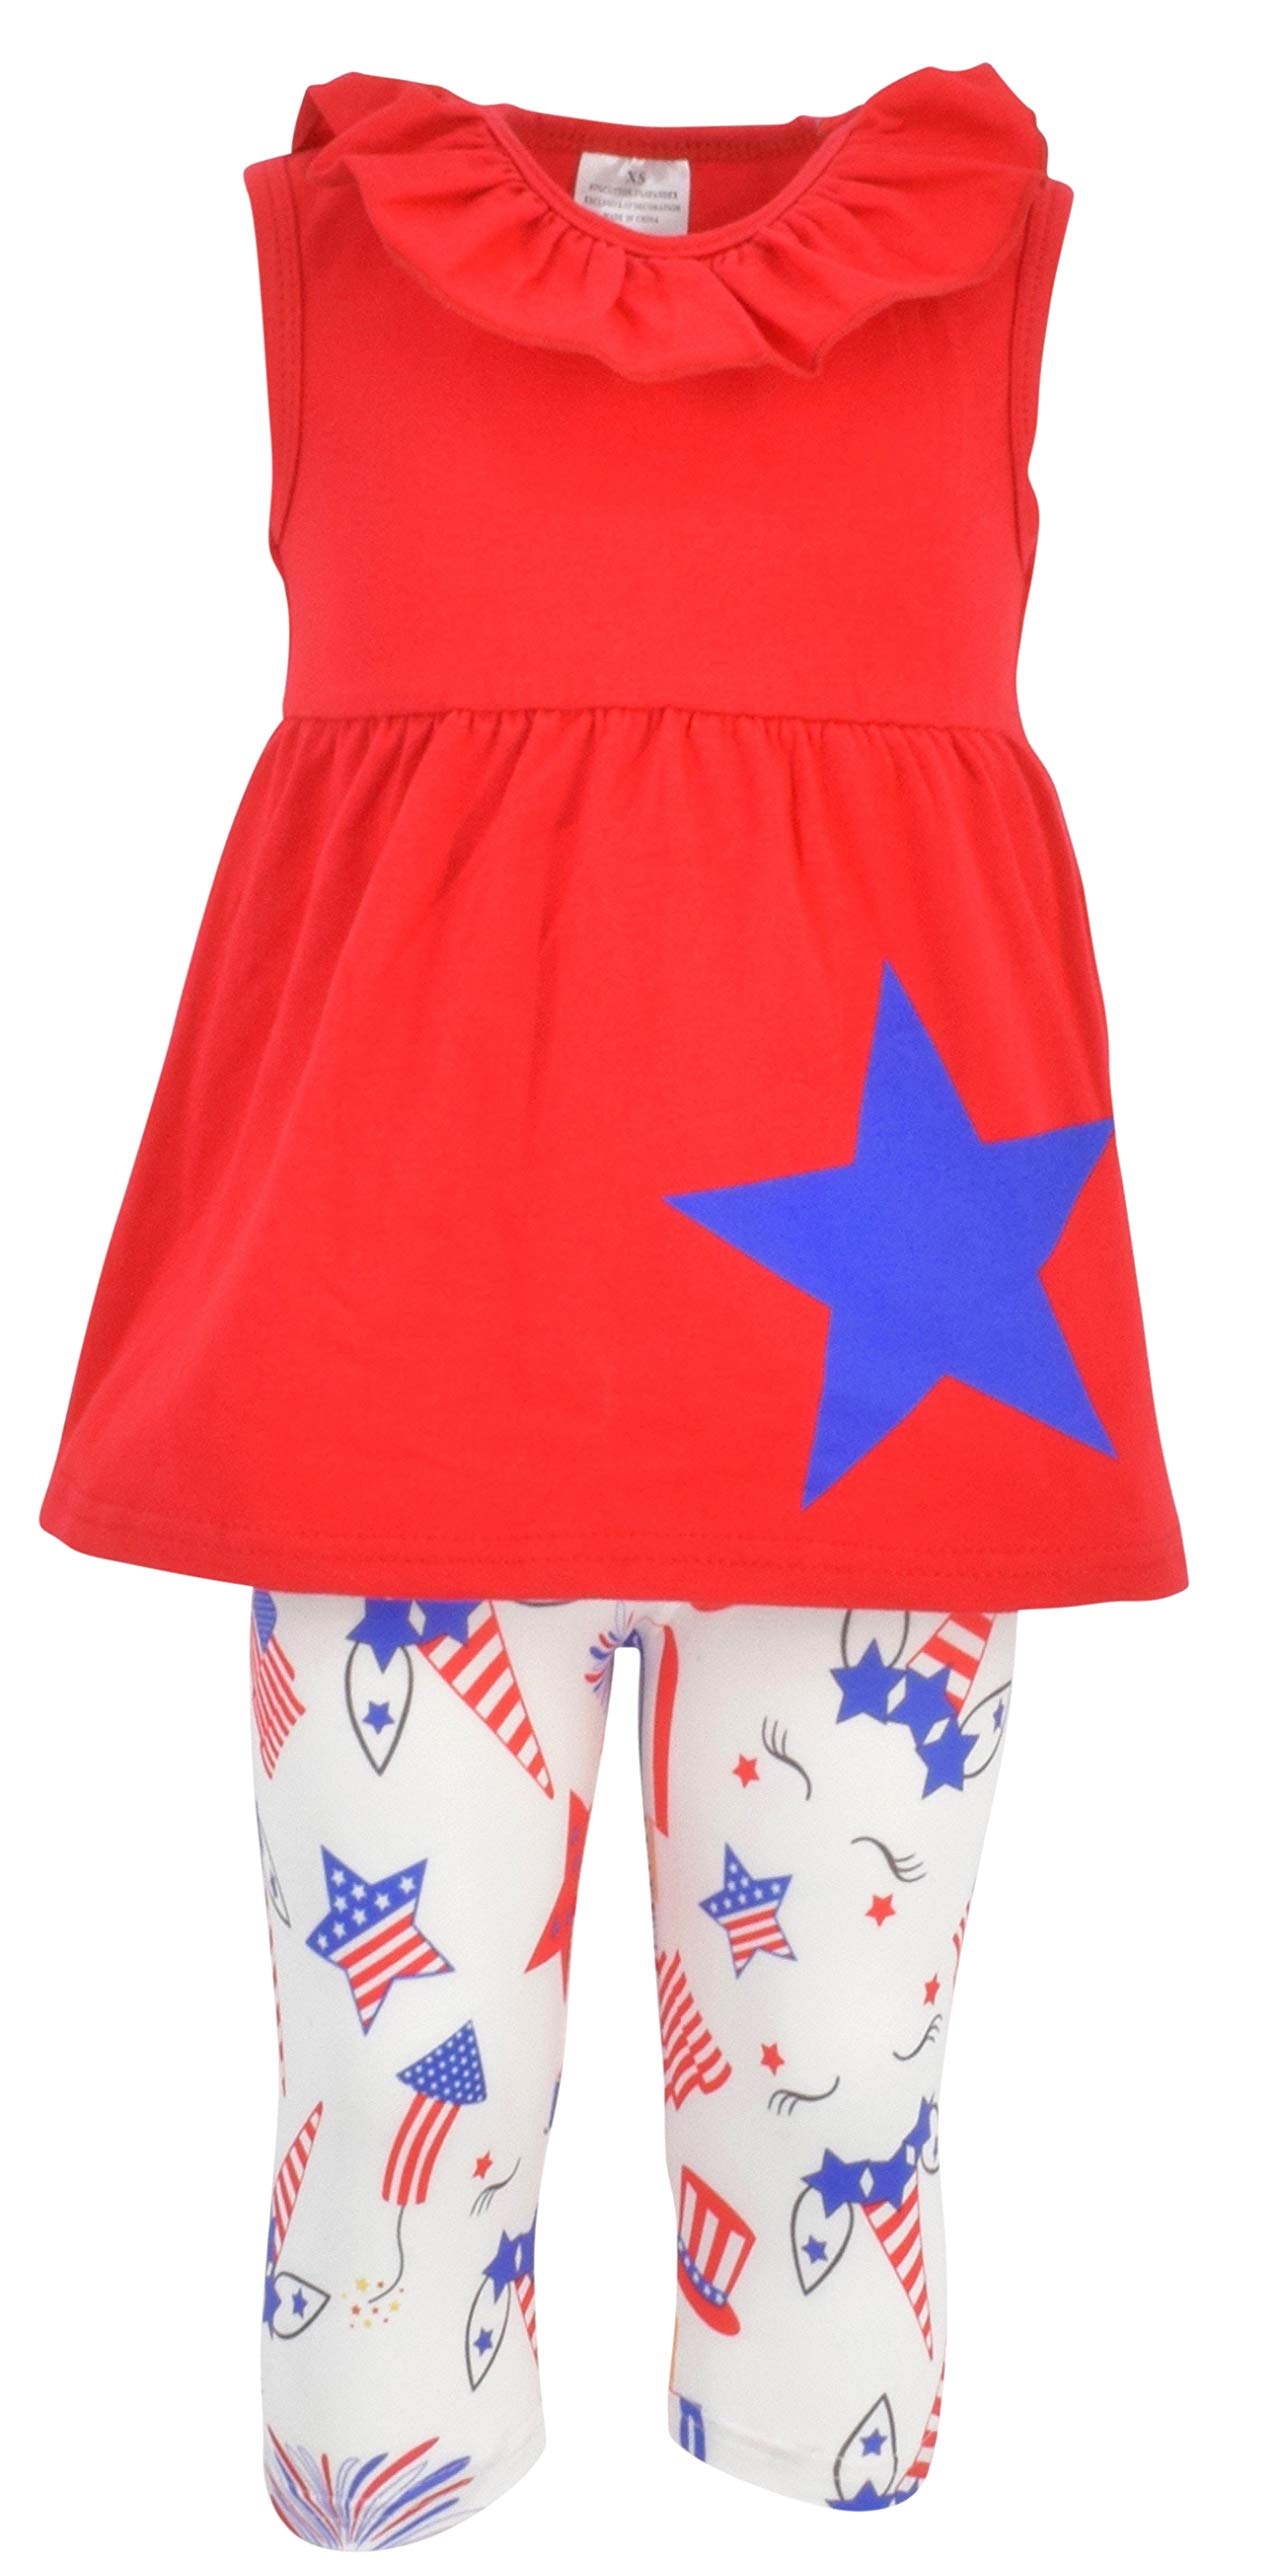 Unique Baby Girls Patriotic 4th of July Blue Star Outfit